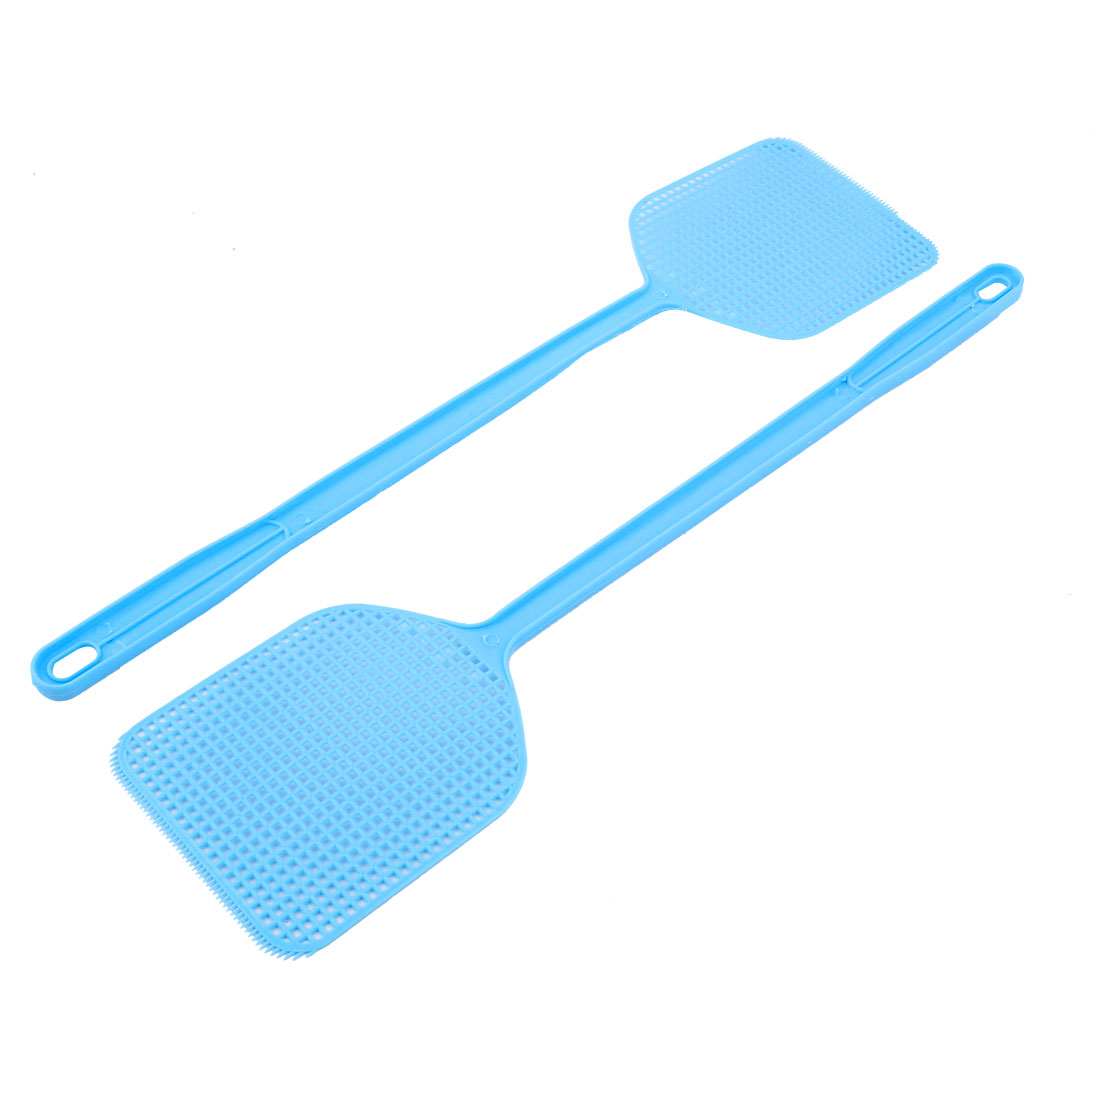 2pcs Blue Plastic Fly Swatter Bug Mosquito Insect Killer Catcher 45cm Length